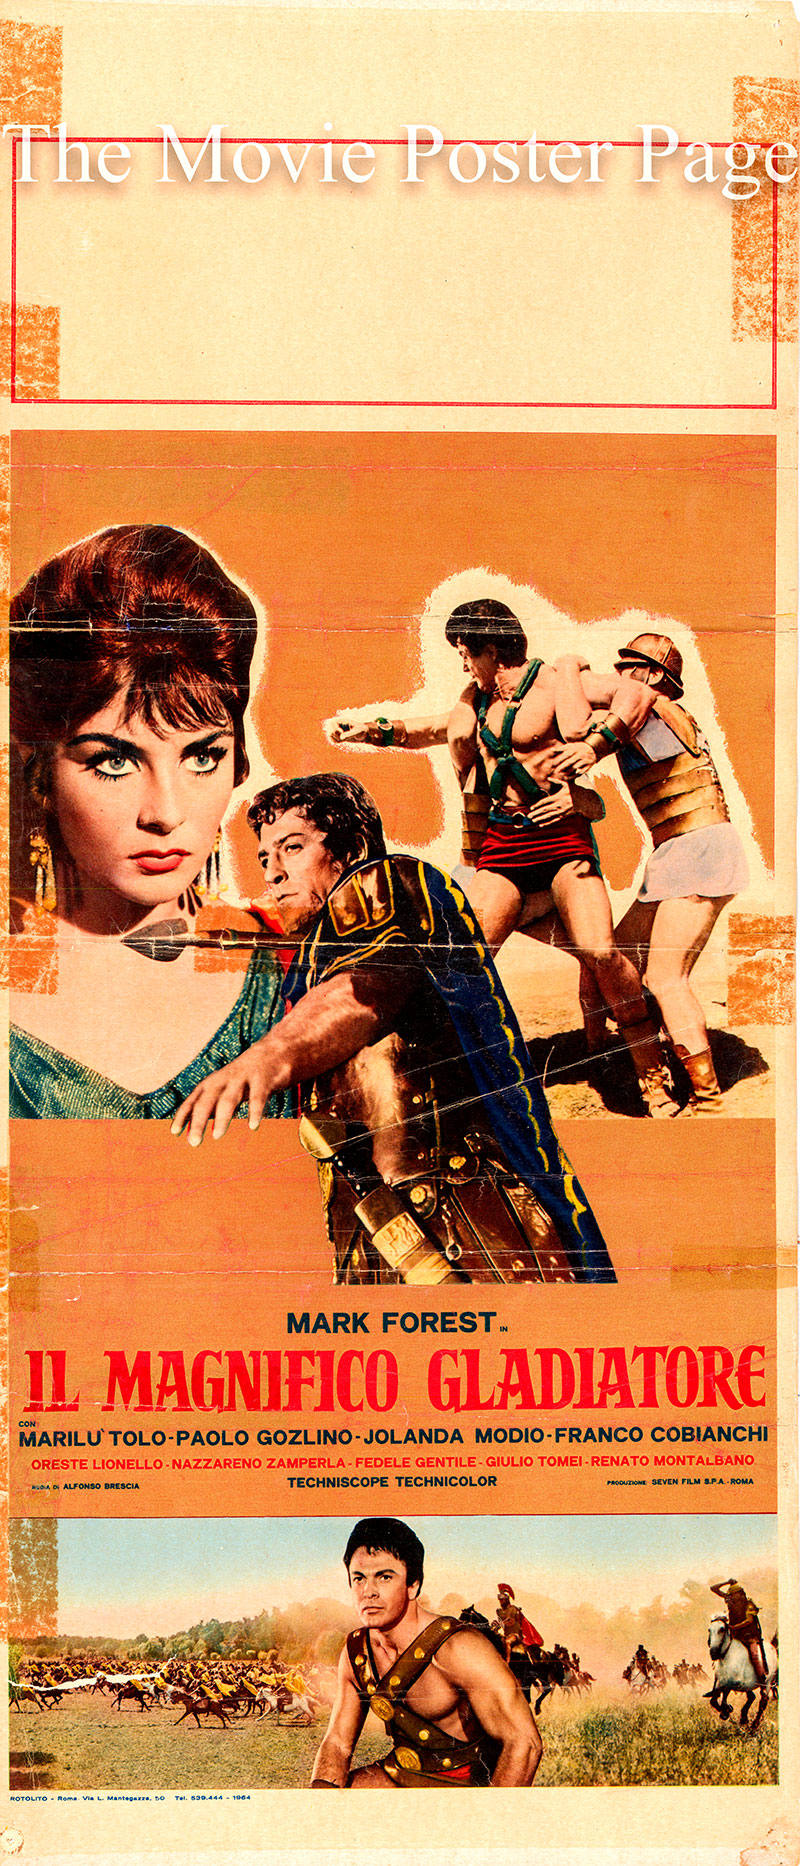 Pictured is an Italian locandina poster for the 1964 Alfonso Brescia film The Magnificent Gladiator starring Mark Forest as Hercules/Attalus.